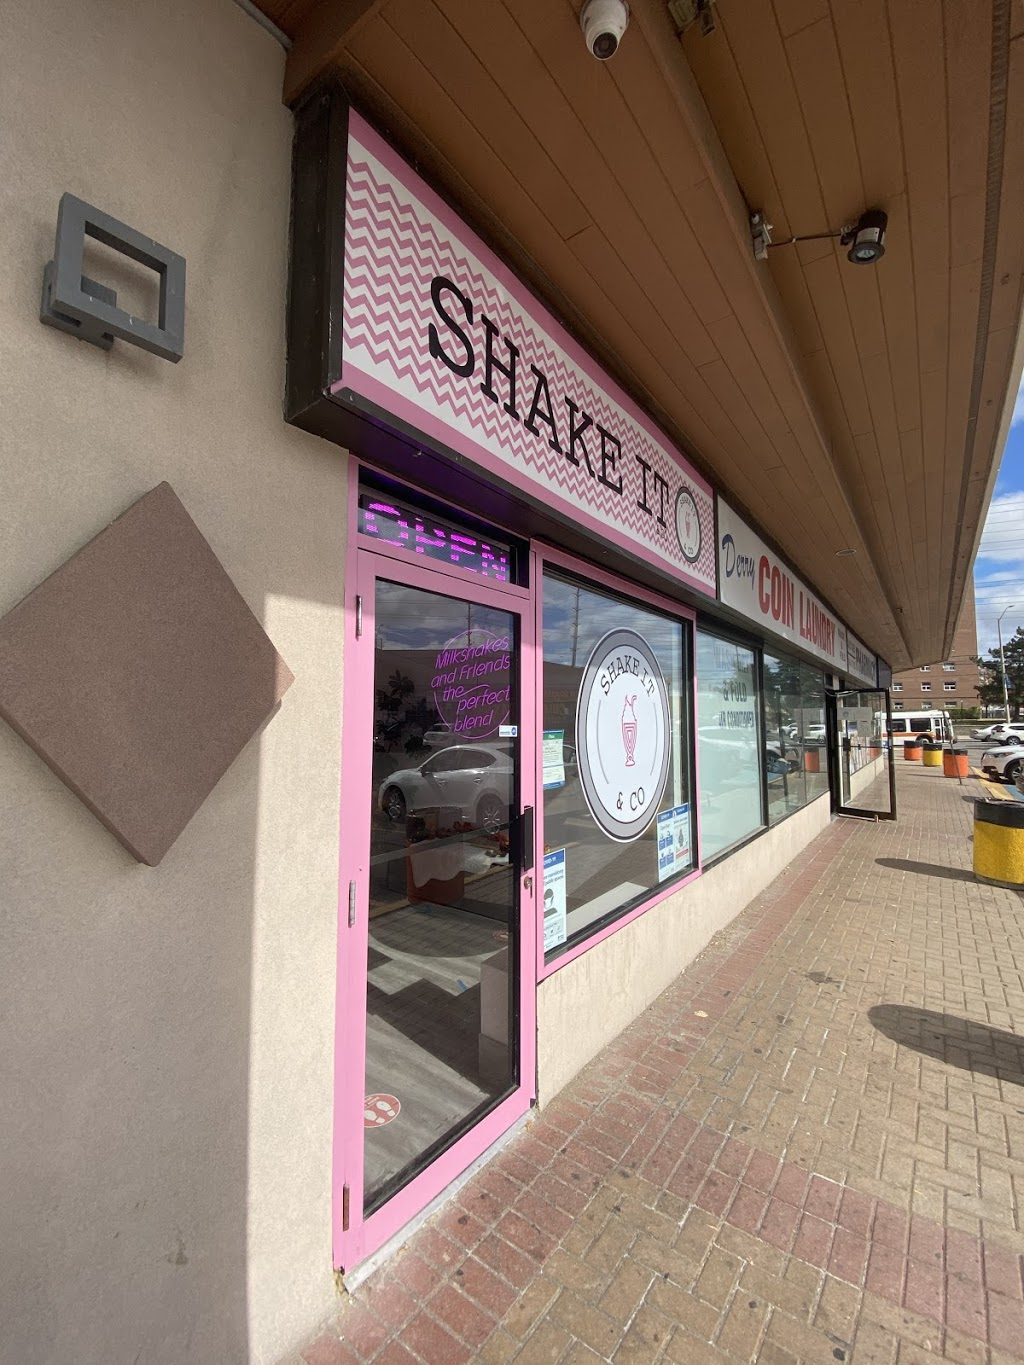 shake it & co   cafe   3427 Derry Rd E, Mississauga, ON L4T 1A8, Canada   9056712288 OR +1 905-671-2288